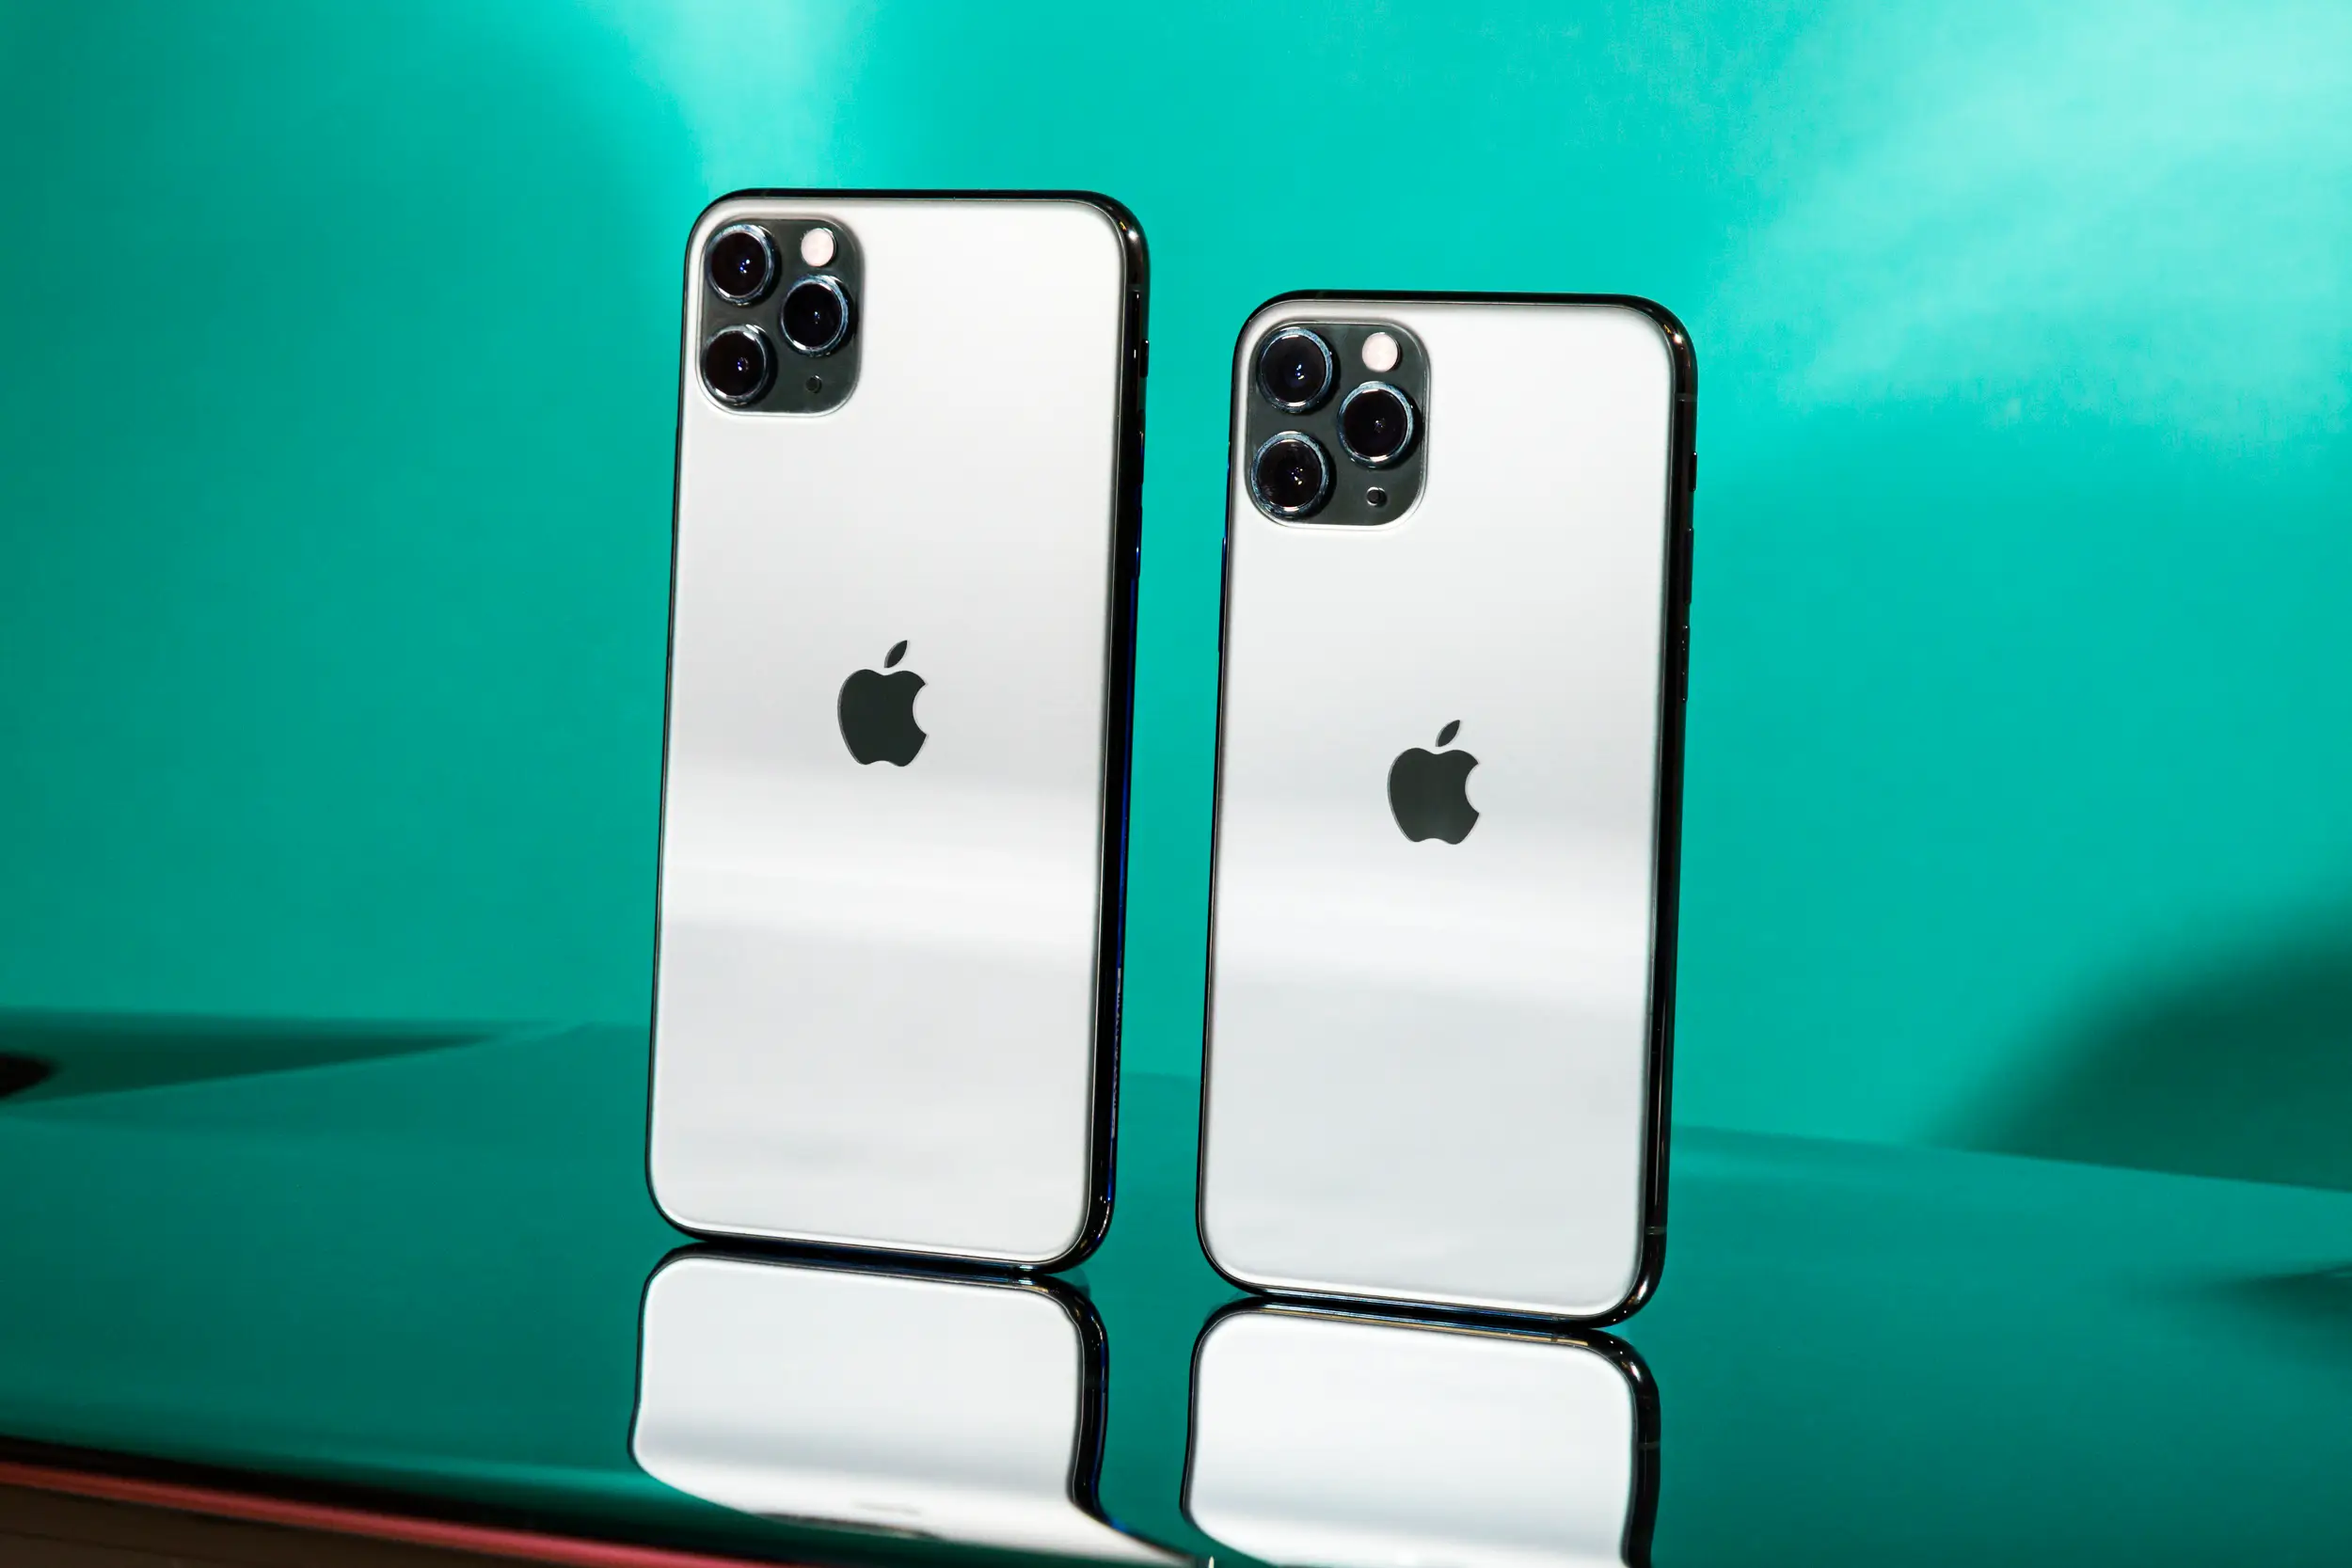 iPhone 12 Pro vs iPhone 12 Pro Max: Which Takes Better Photos?